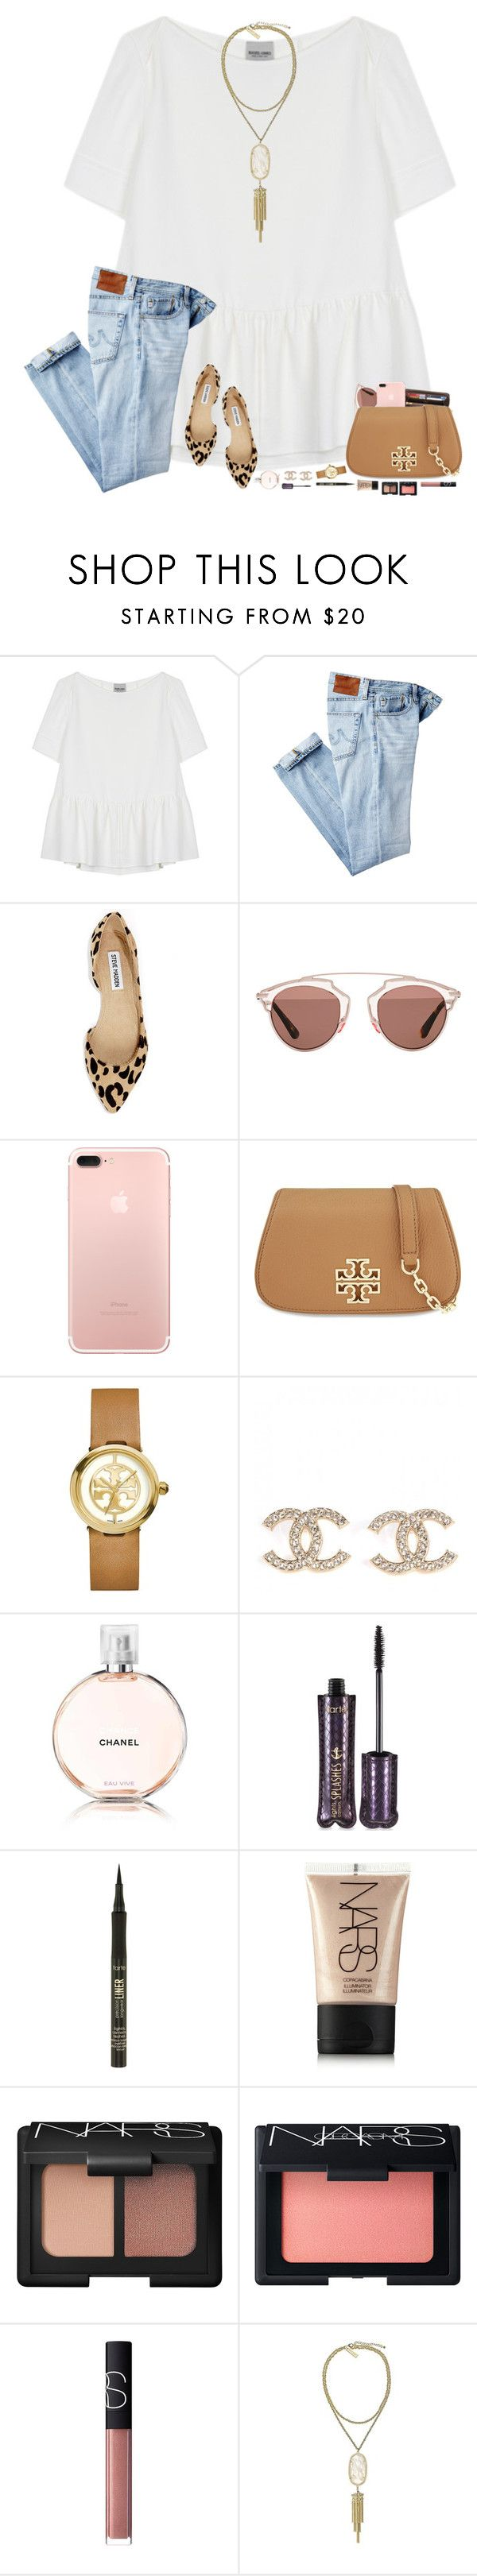 """""""going to a wedding tonight!"""" by hopemarlee ❤ liked on Polyvore featuring Rachel Comey, AG Adriano Goldschmied, Steve Madden, Christian Dior, Louis Vuitton, Tory Burch, Chanel, tarte, NARS Cosmetics and Kendra Scott"""